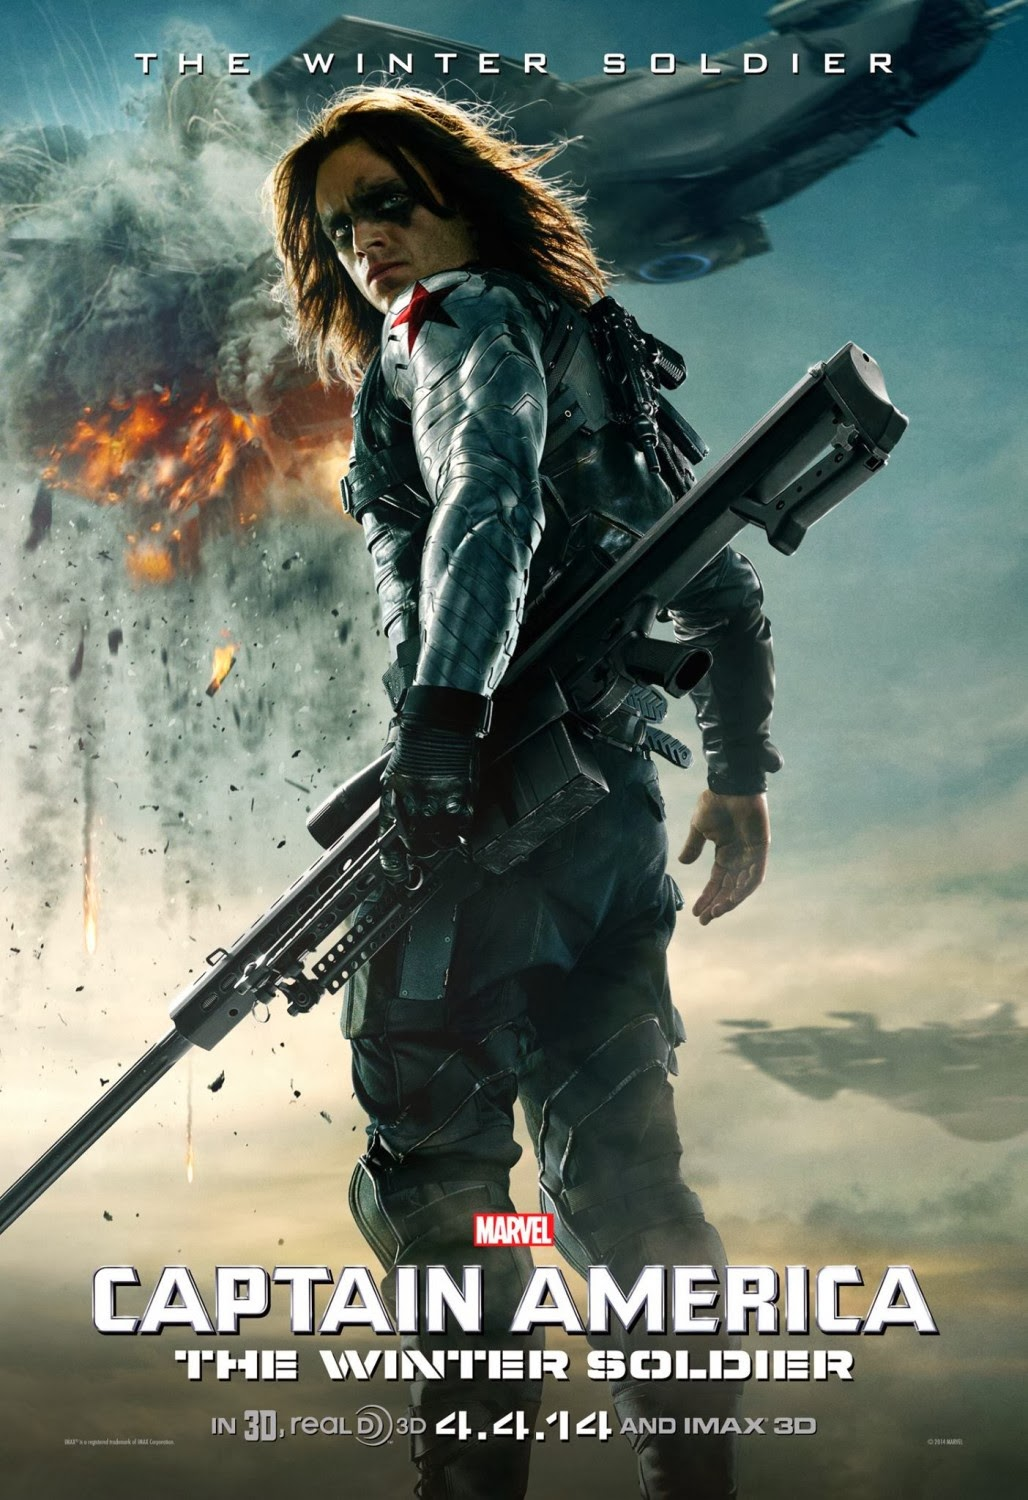 Captain America: The Winter Soldier Teaser Character Movie Poster - Sebastian Stan as Winter Soldier